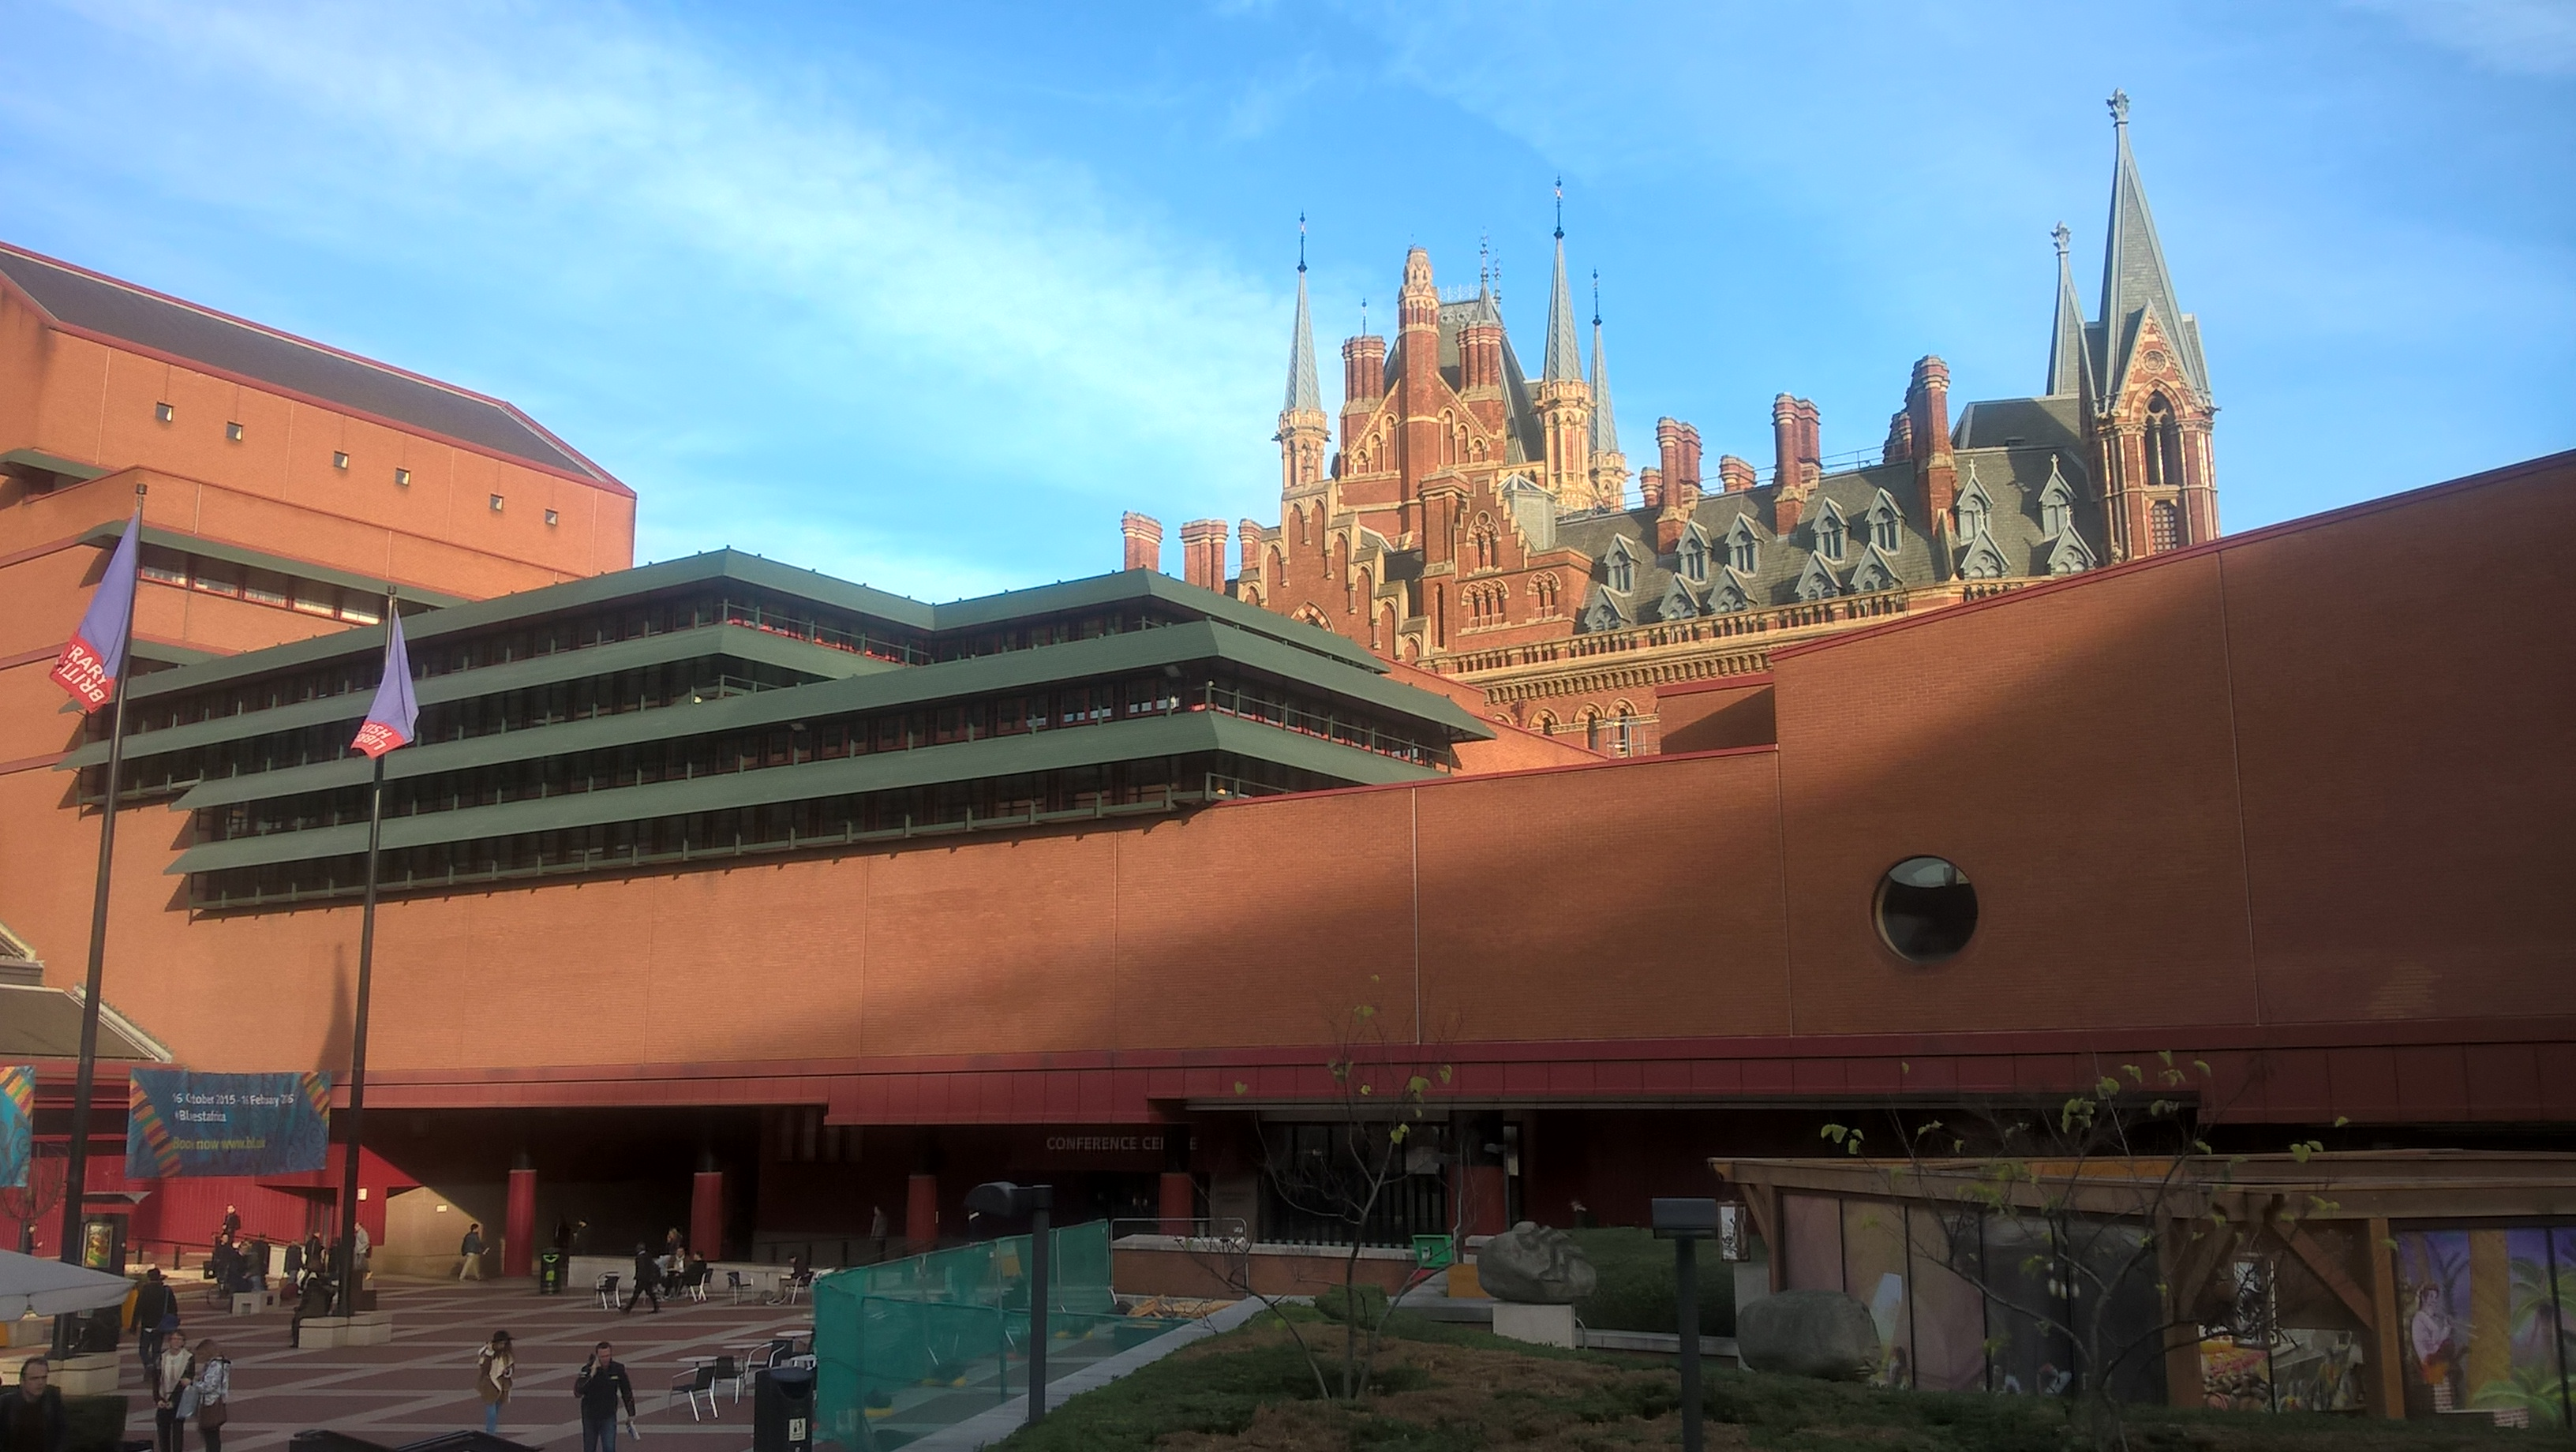 The British Library (foreground). St.Pancreas Railway Station and Hotel (background) They don't build public buildings like they used to.